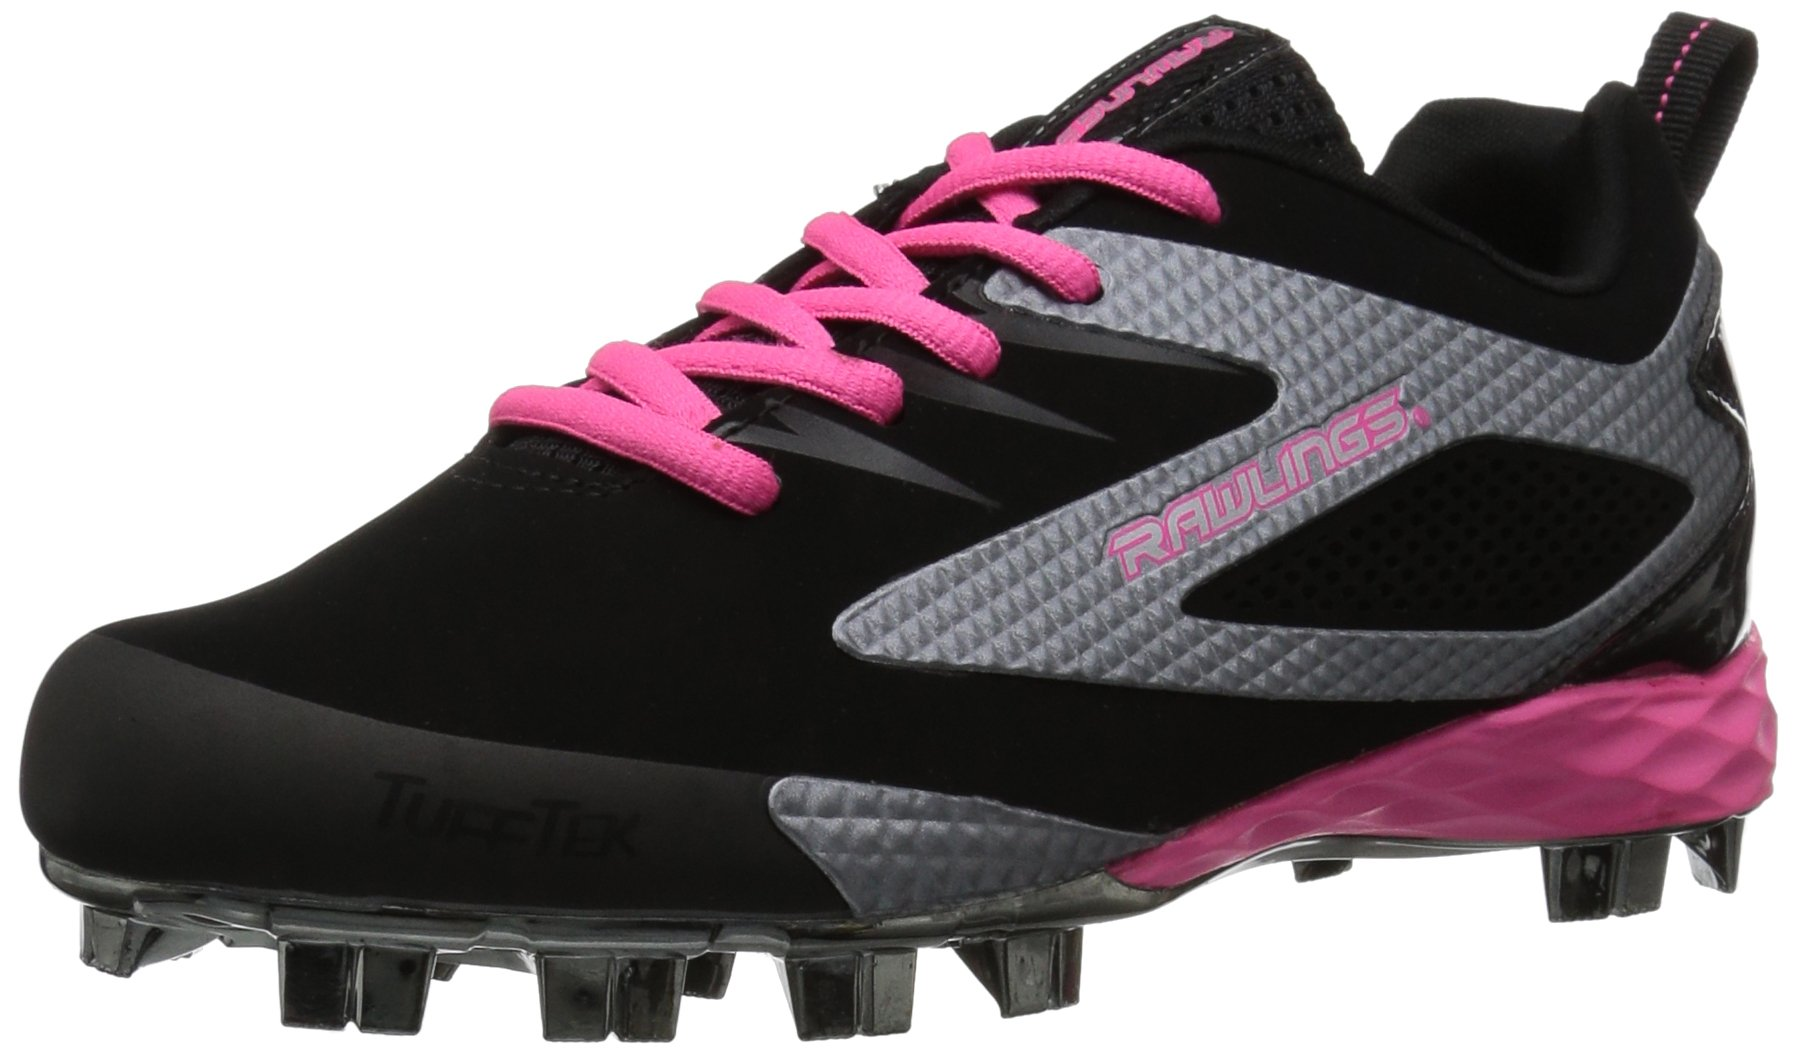 RAWLINGS Girls' Capture Baseball Shoe, Black/Pink, 4 M US Big Kid by RAWLINGS